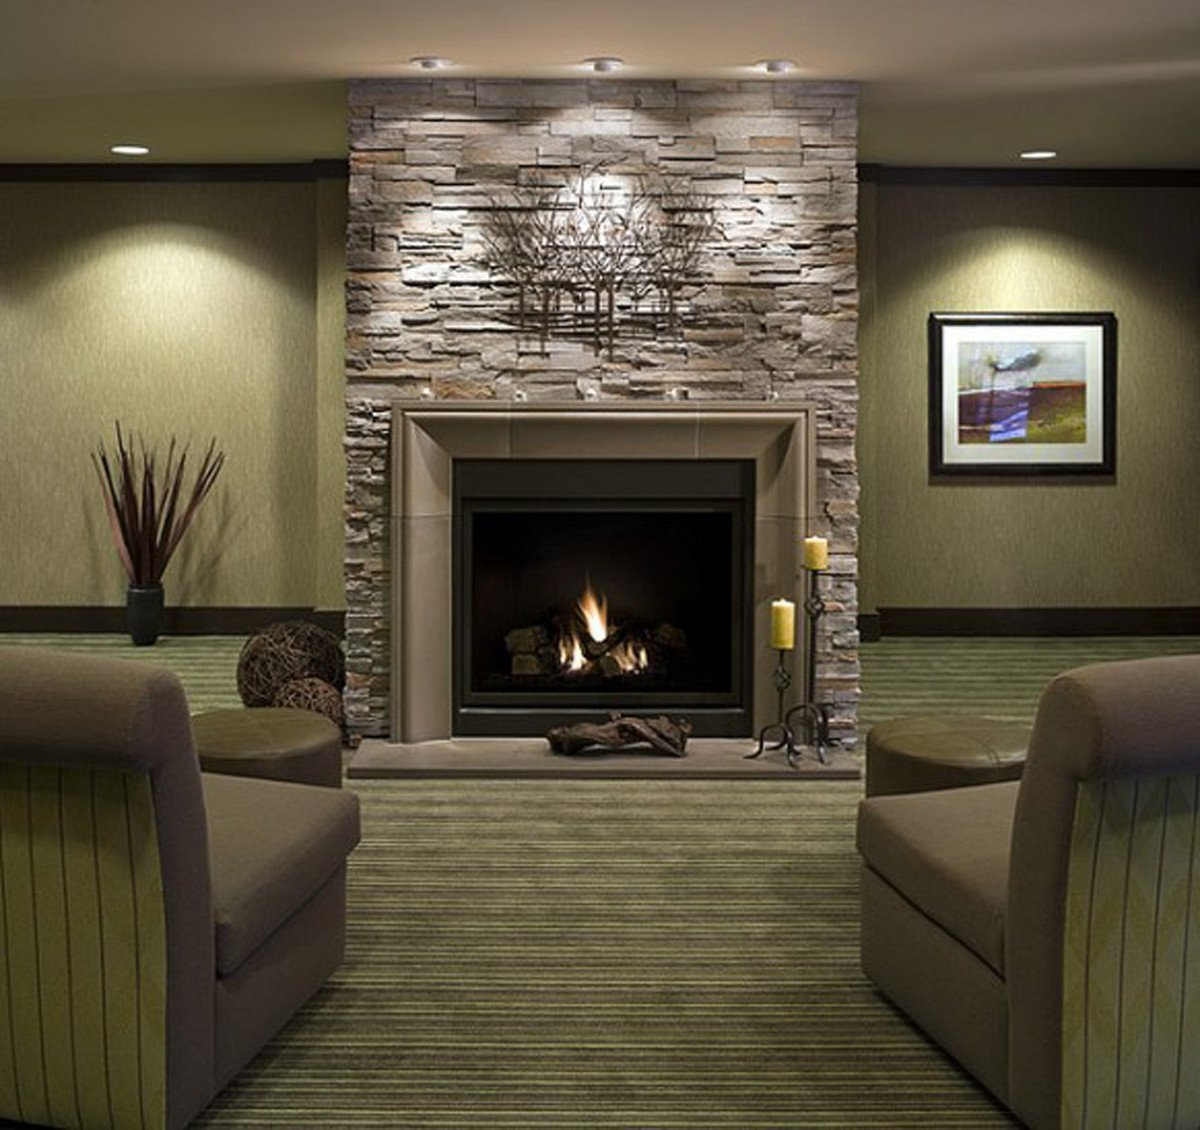 Living Room Decor with Fireplace Luxury Decorations Interior Marvelous Stone Fireplace with Grey